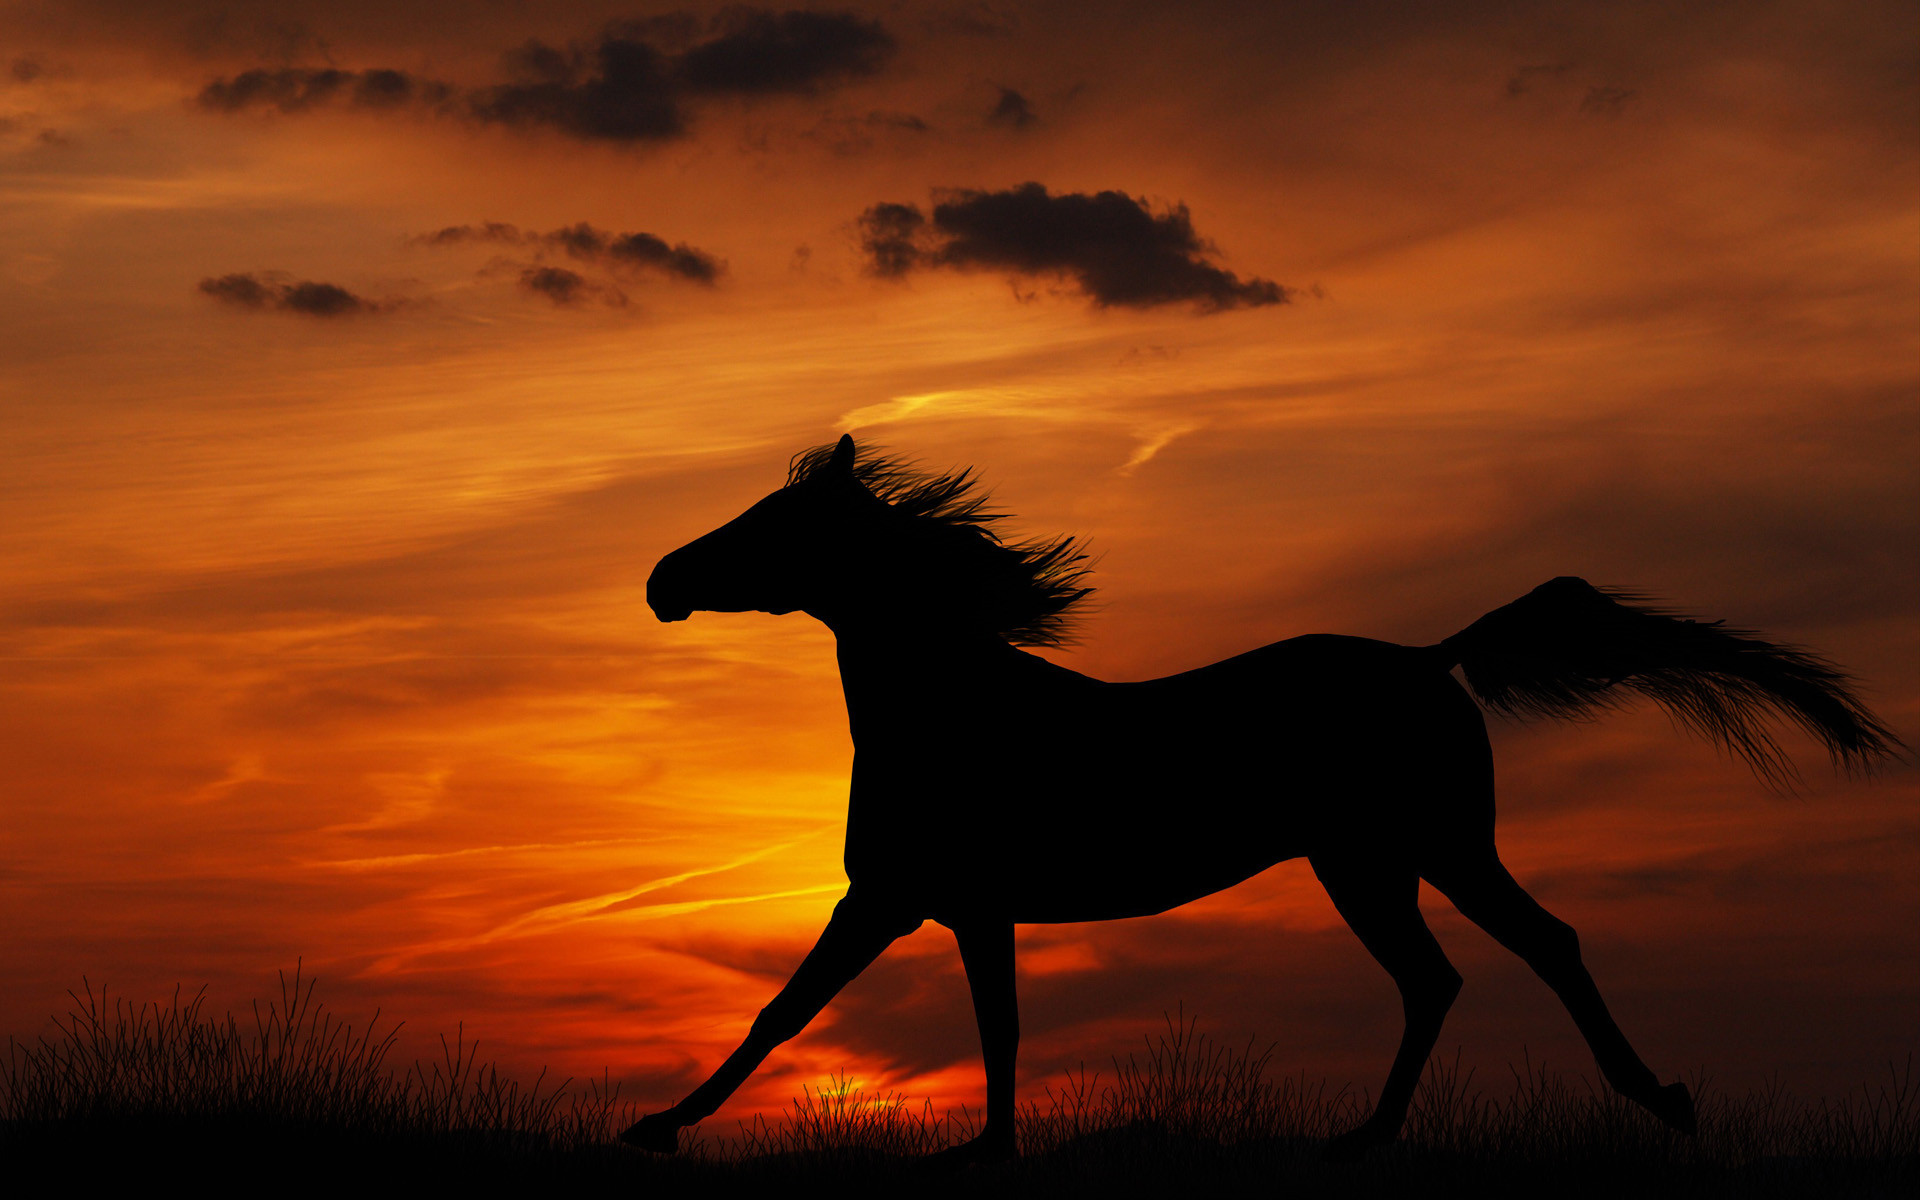 Res: 1920x1200, HDQ Beautiful Horse Images & Wallpapers for PC & Mac, Laptop, Tablet,  Mobile Phone